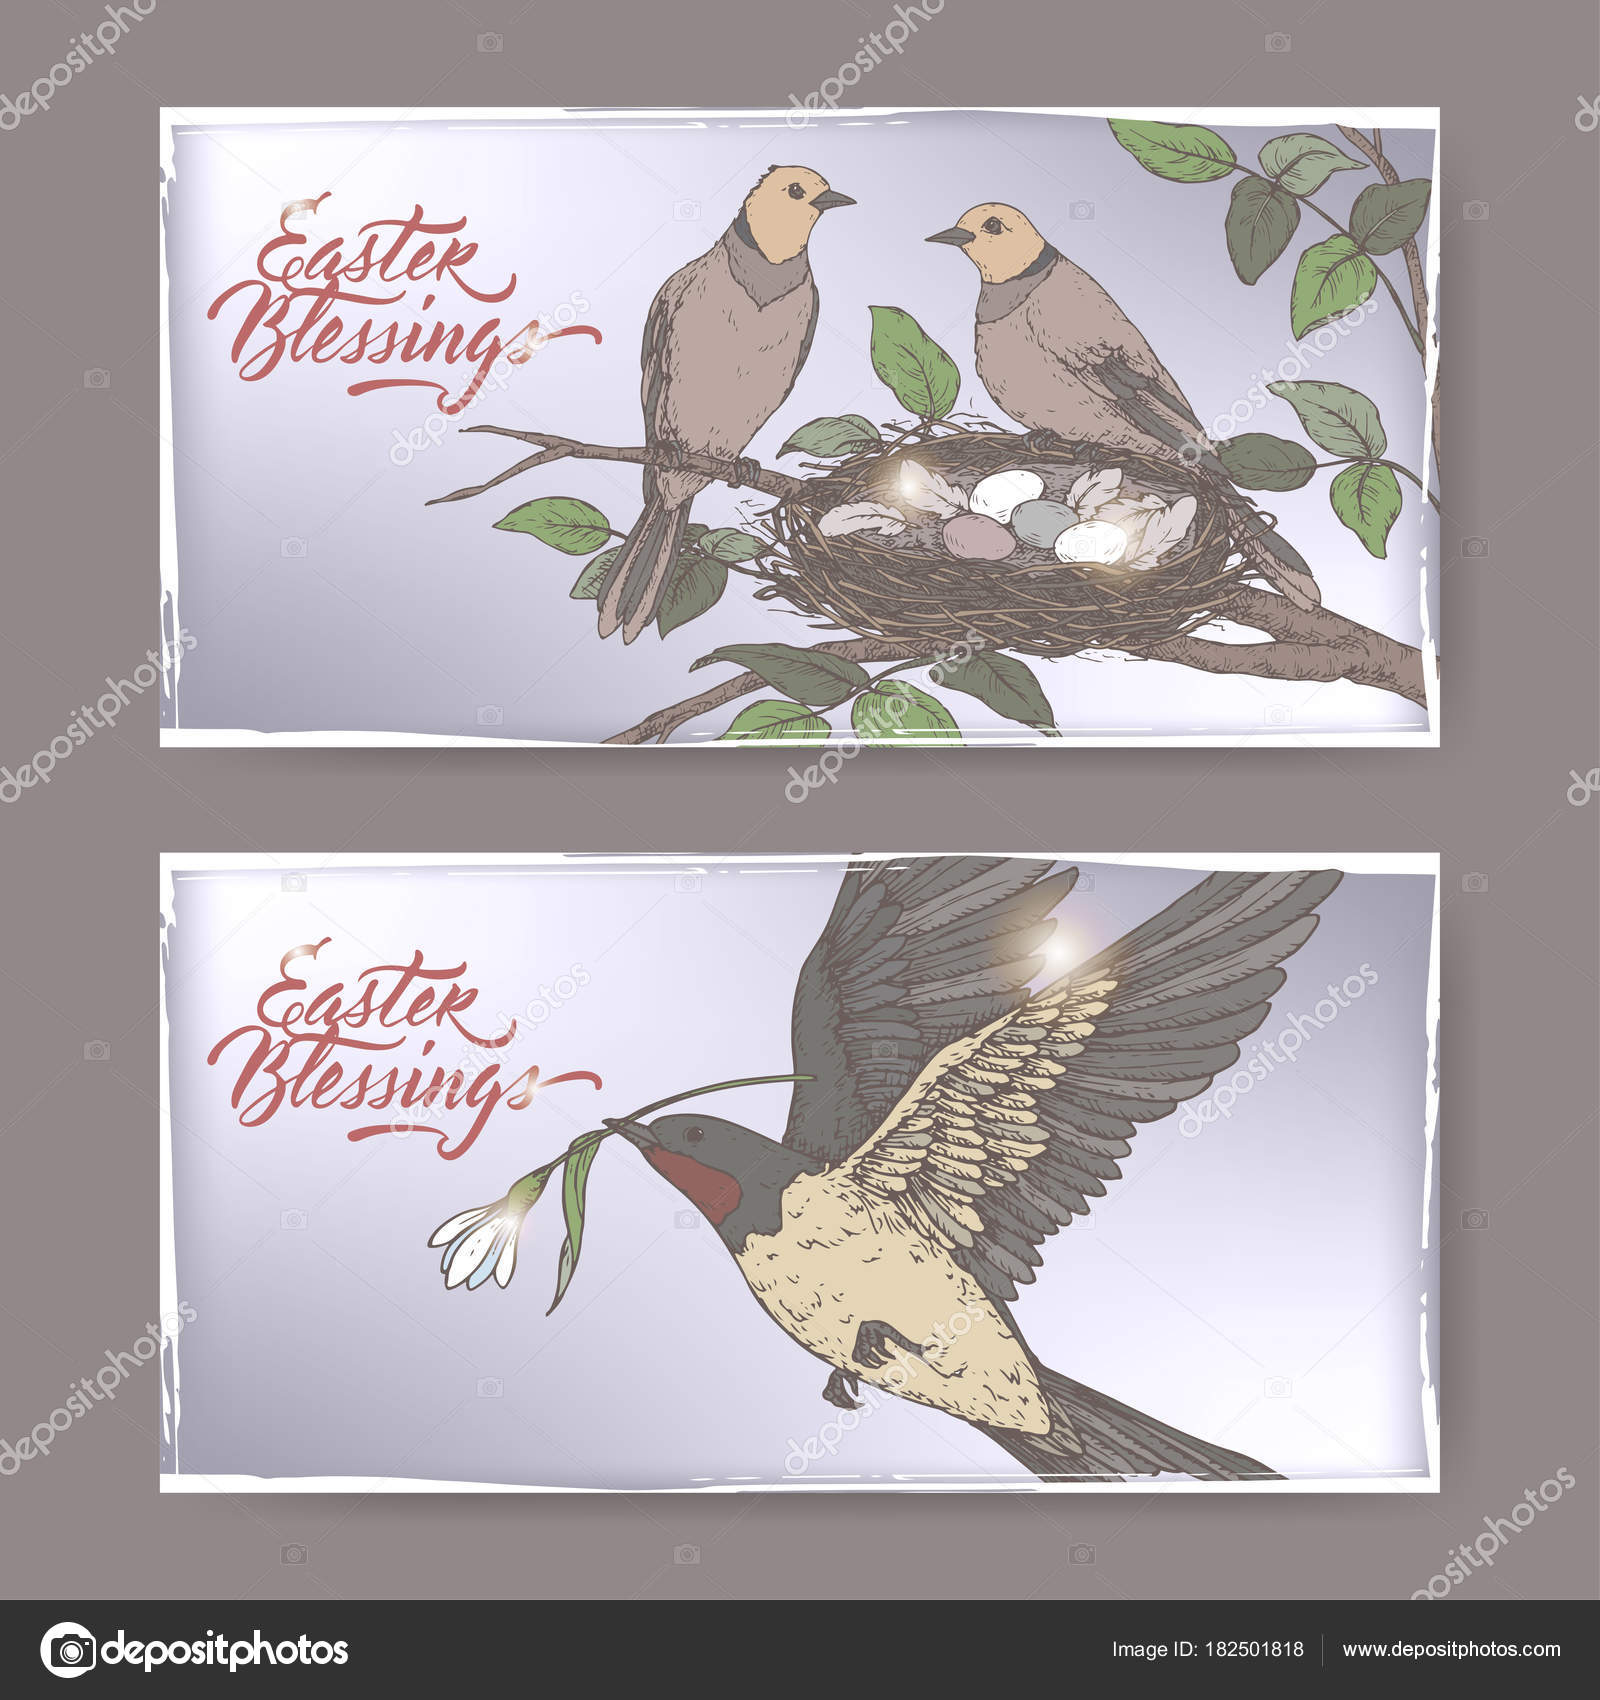 2 Easter Color Greeting Cards With Swallow Birds And Nest With Eggs